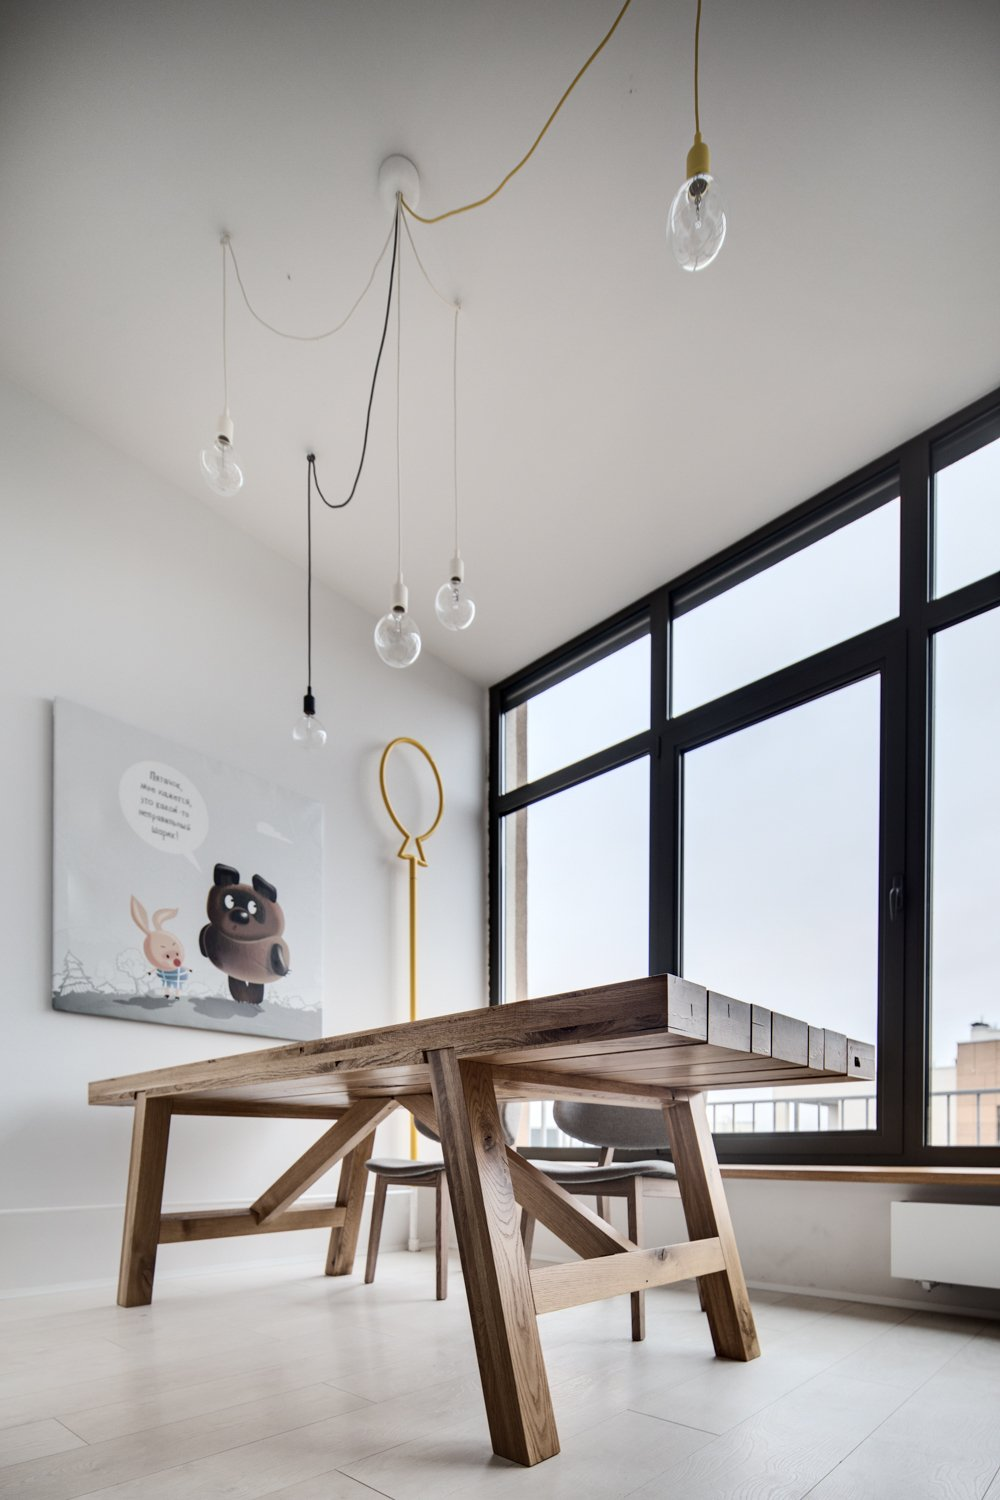 Dangling Light Bulbs - A modern home with personality of perfect for a fun couple